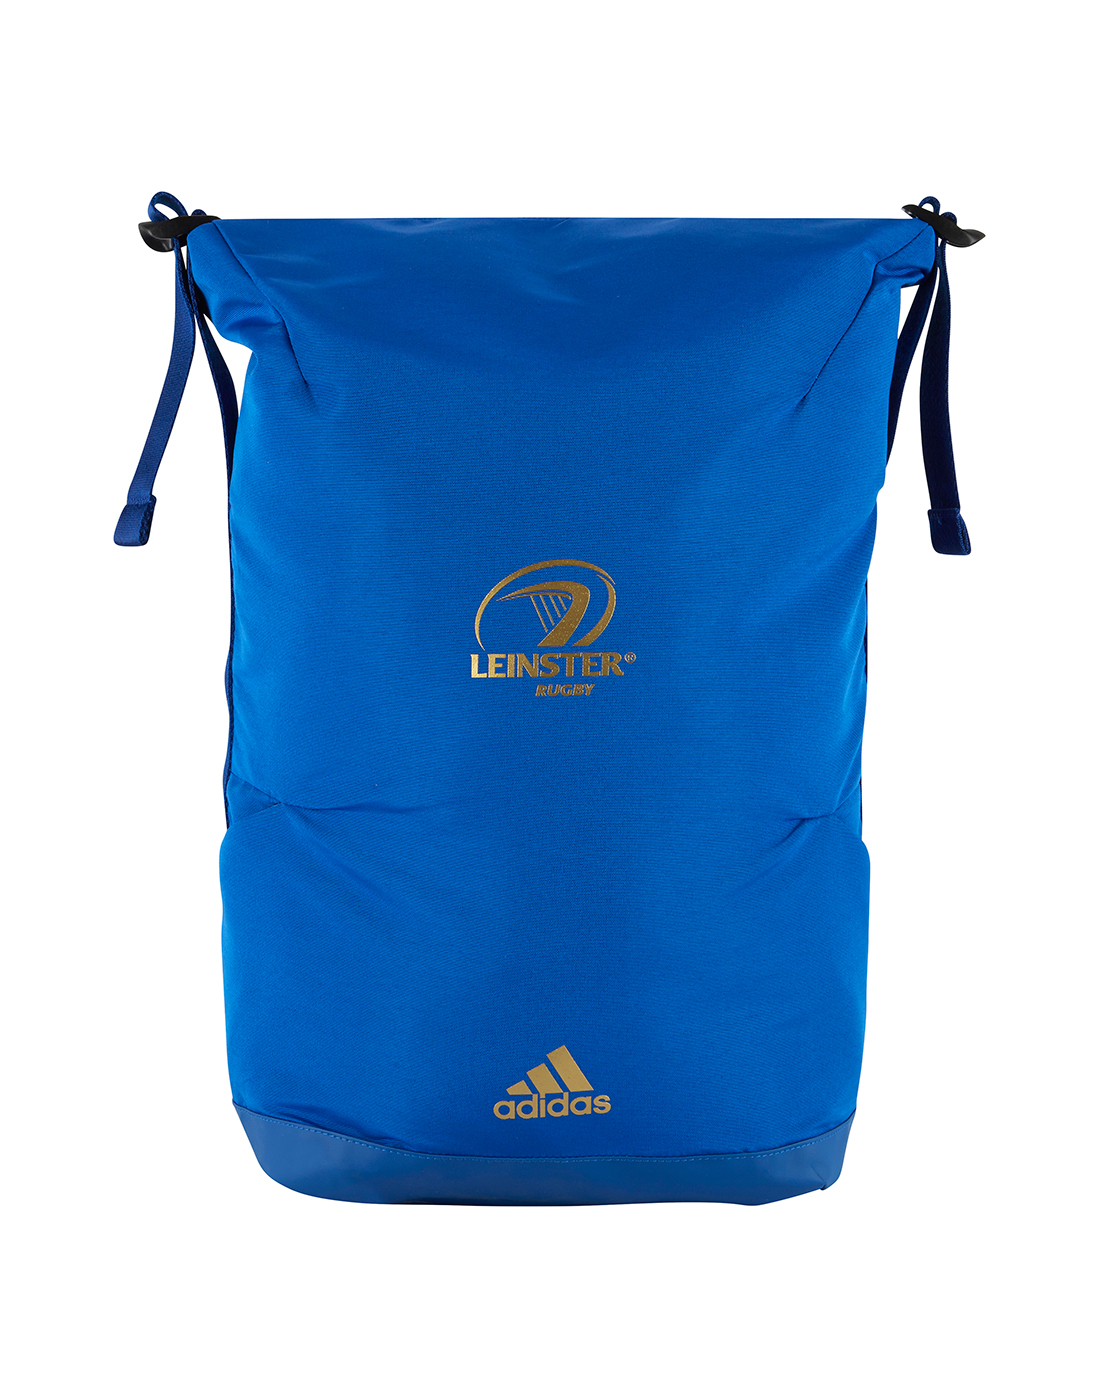 madre Príncipe laberinto  adidas Leinster Backpack - Blue | Life Style Sports IE